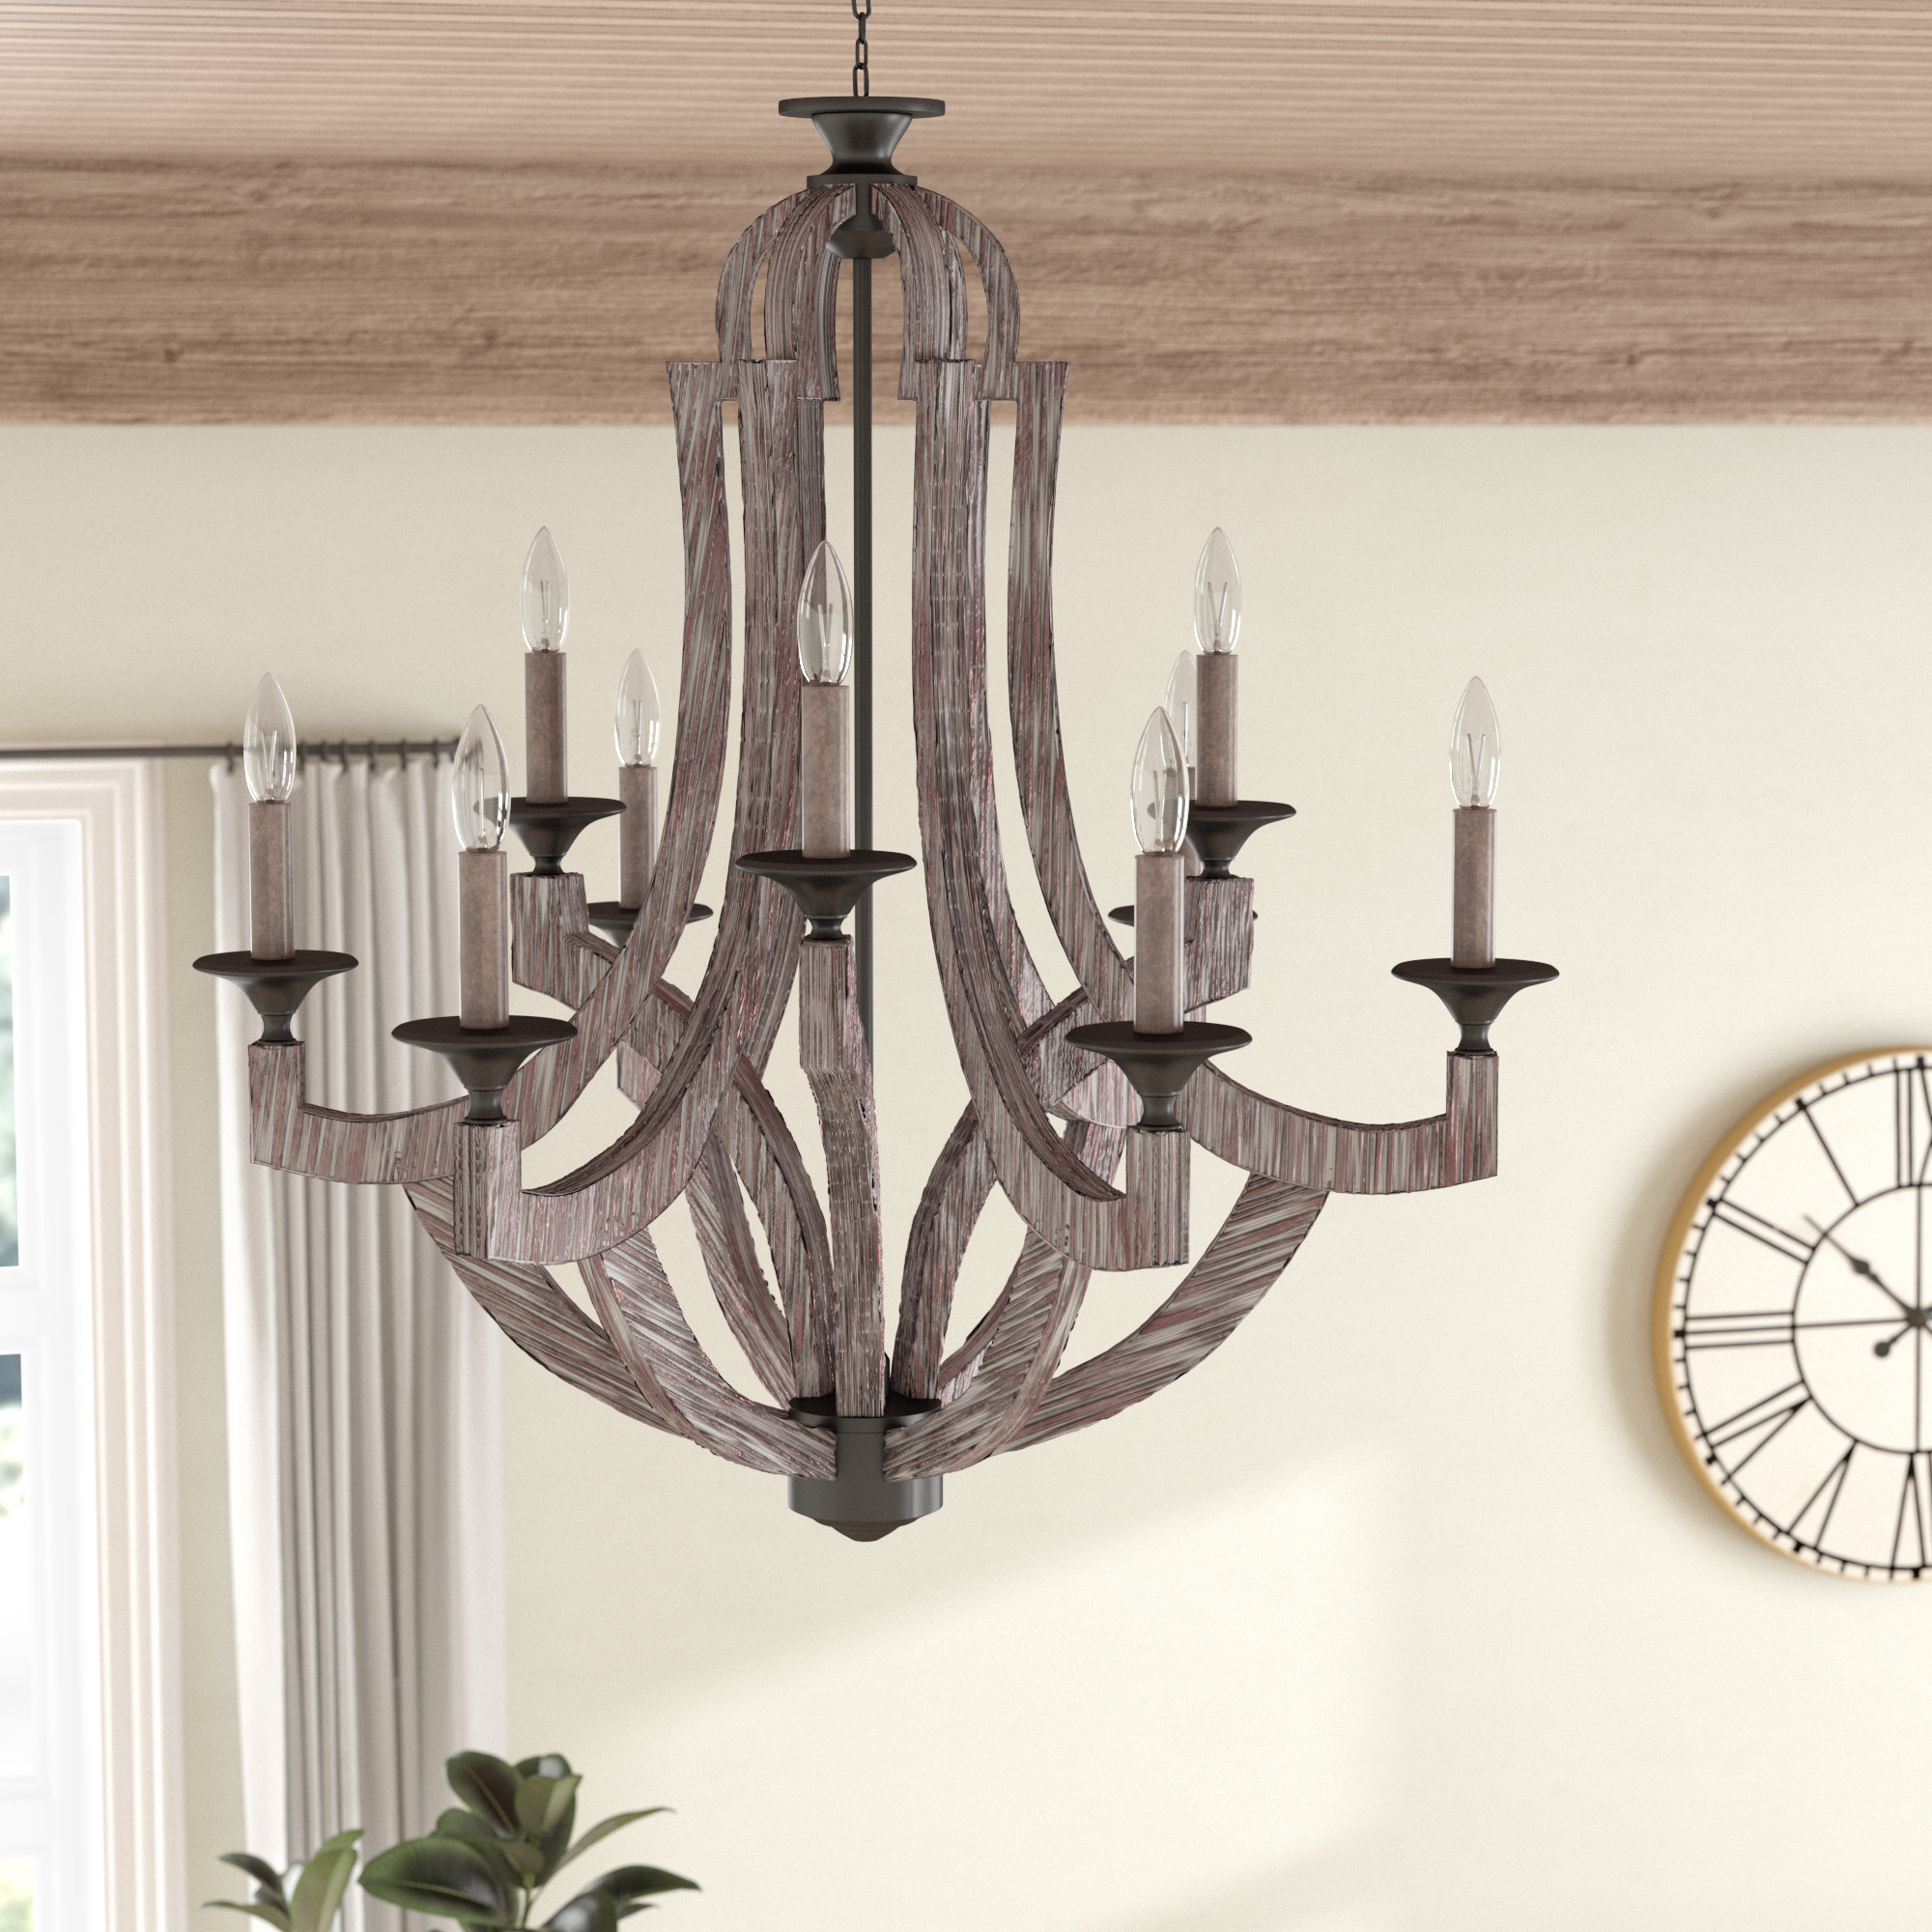 Wayfair Pertaining To Best And Newest Camilla 9 Light Candle Style Chandeliers (View 6 of 25)